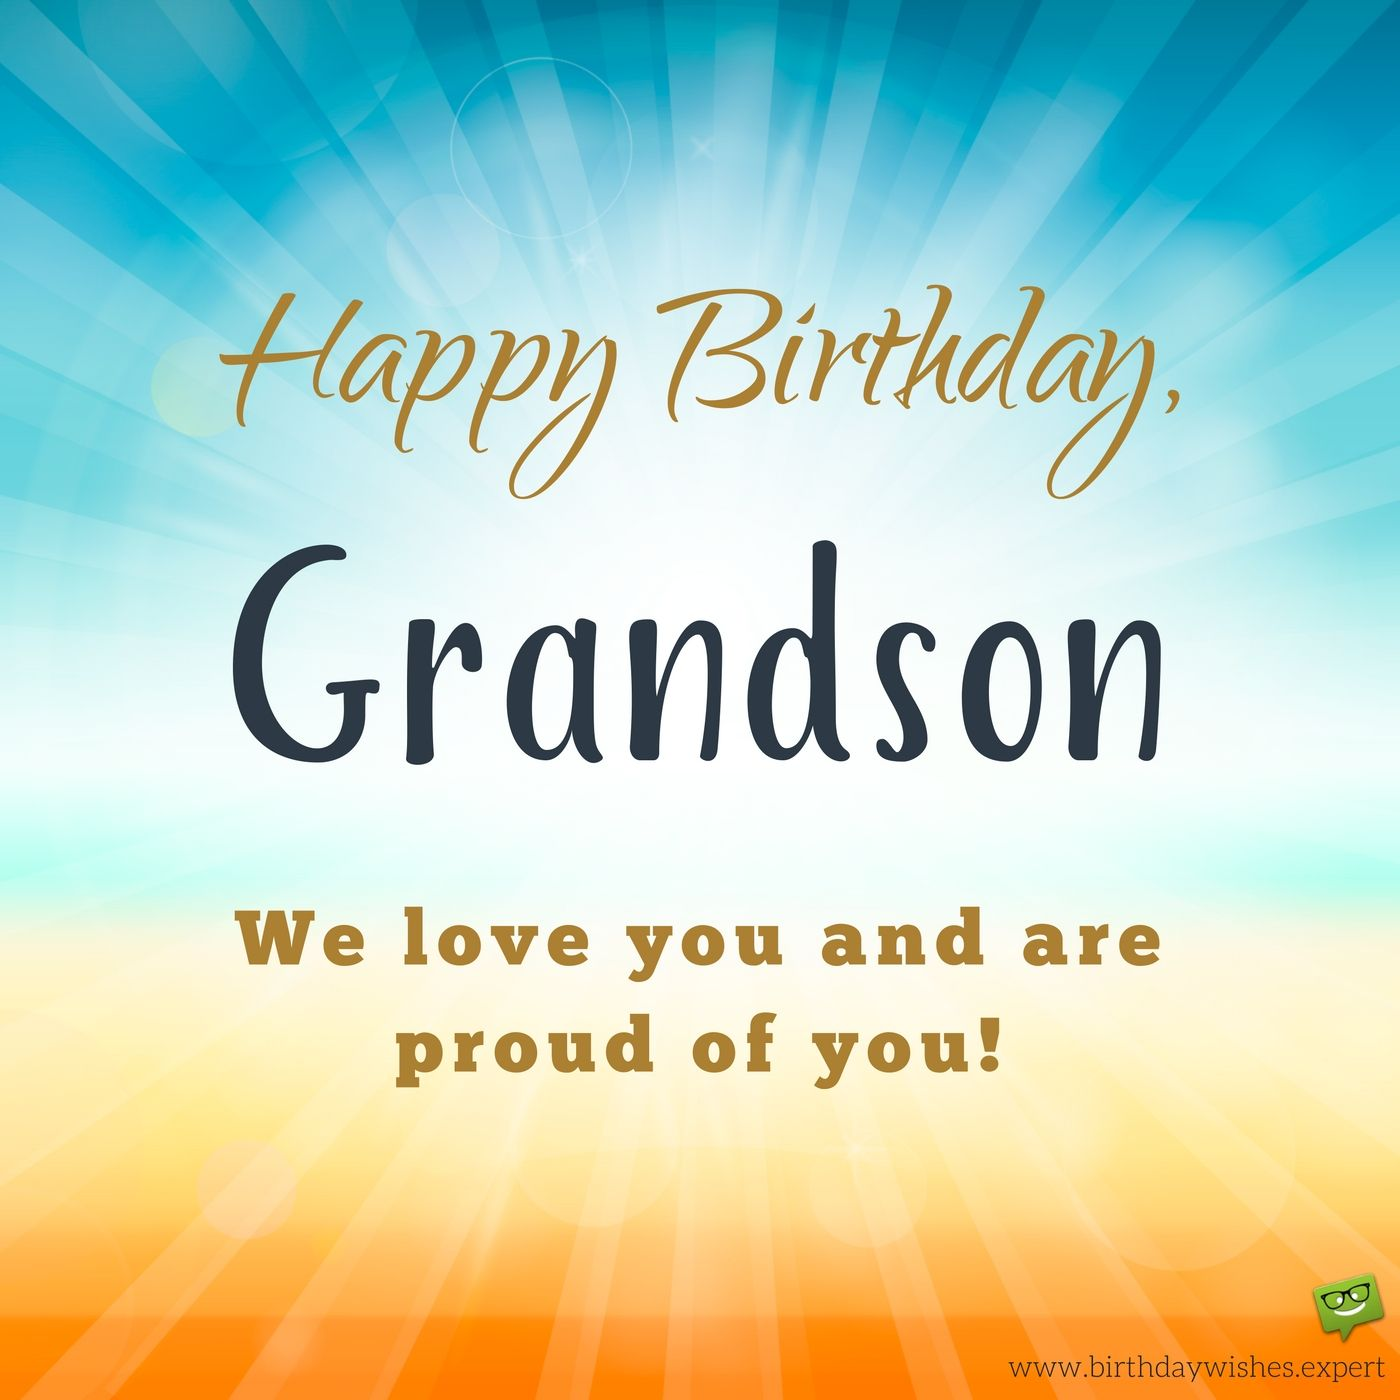 From Your Hi Tech Grandma And Grandpa Birthday Wishes For Happy Birthday Wishes To Grandson